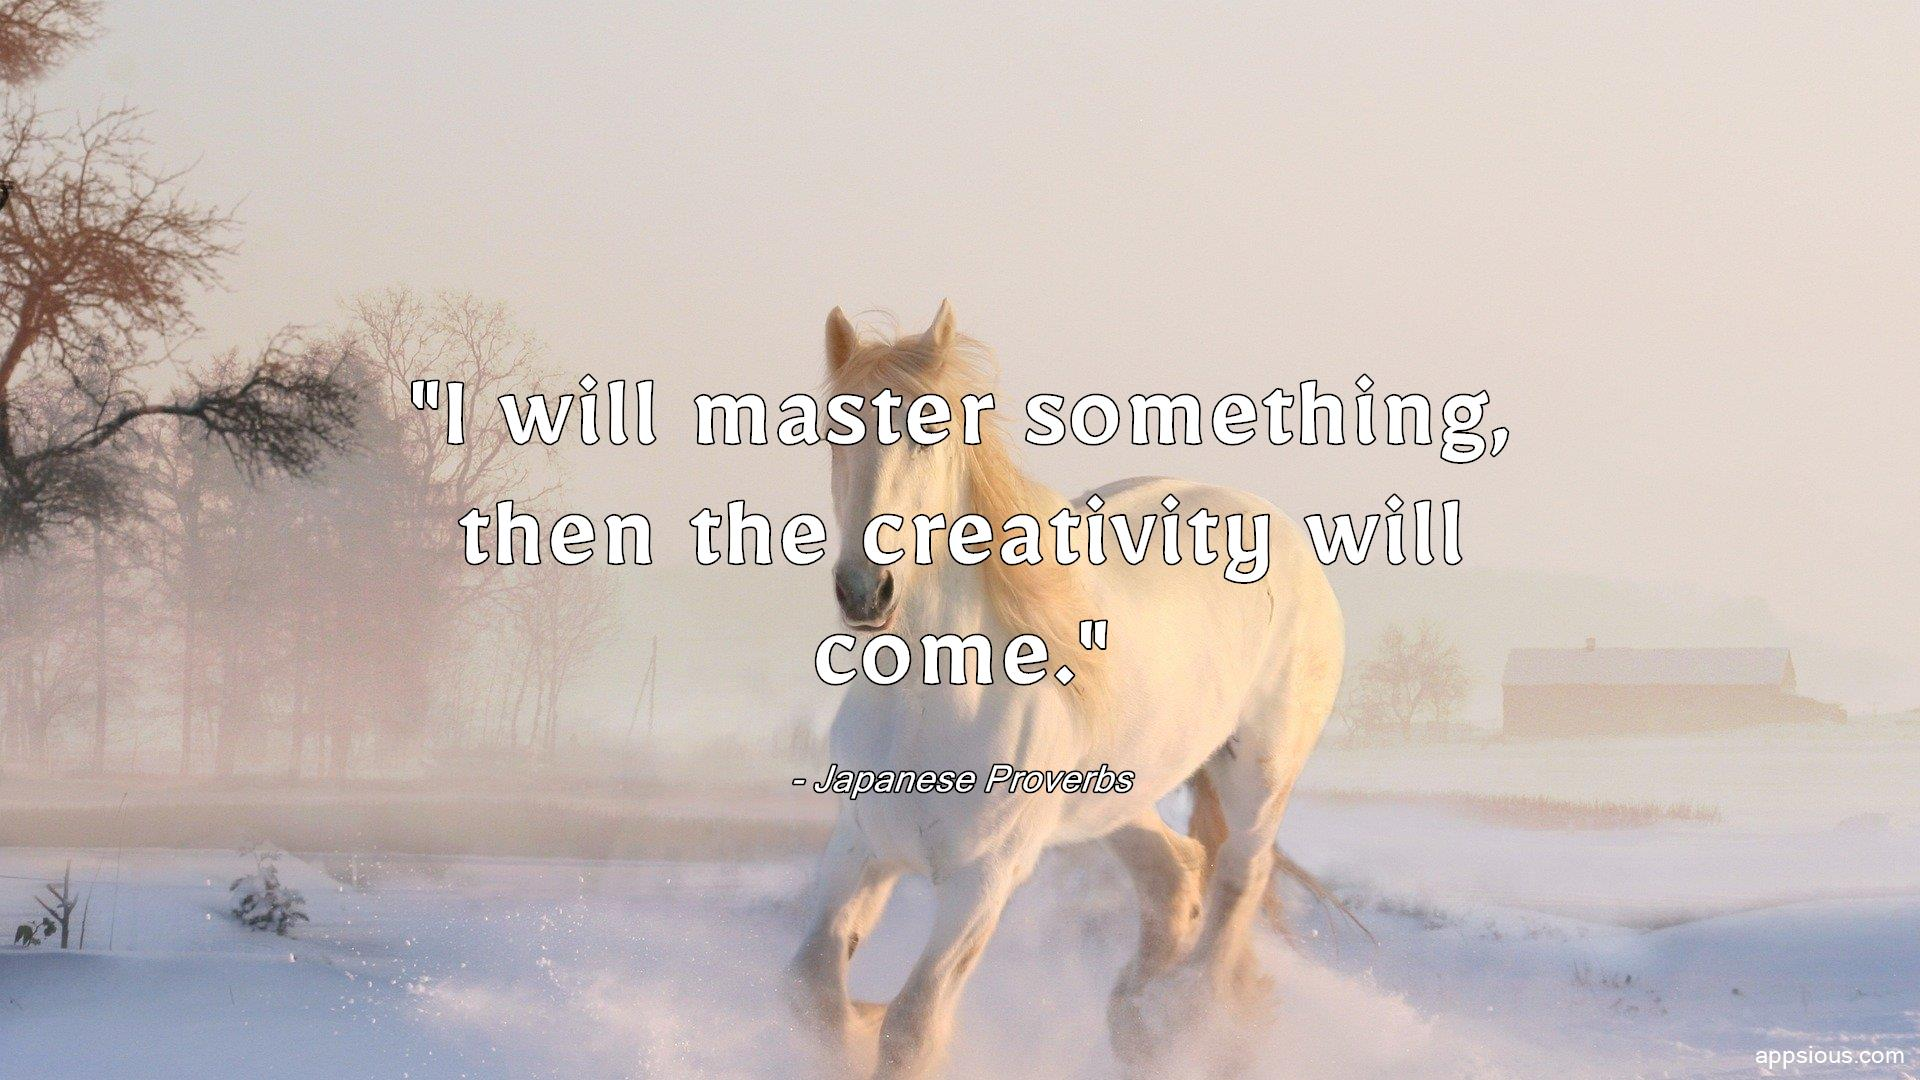 I will master something, then the creativity will come.